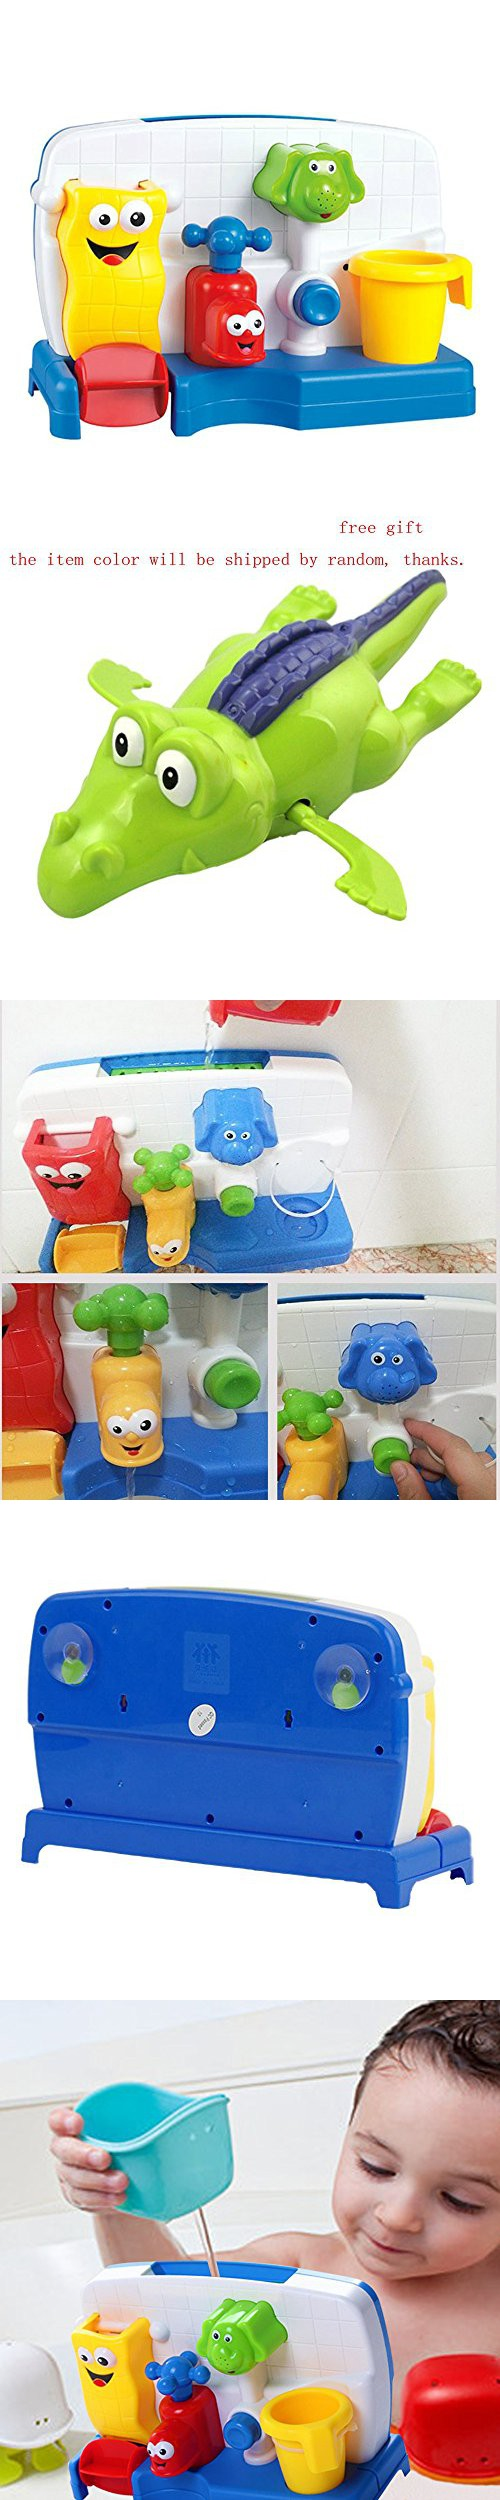 Kids toys images  Baby Bath Toy Kids uSpray faucet Play Plastic Multicolor Wash Toys